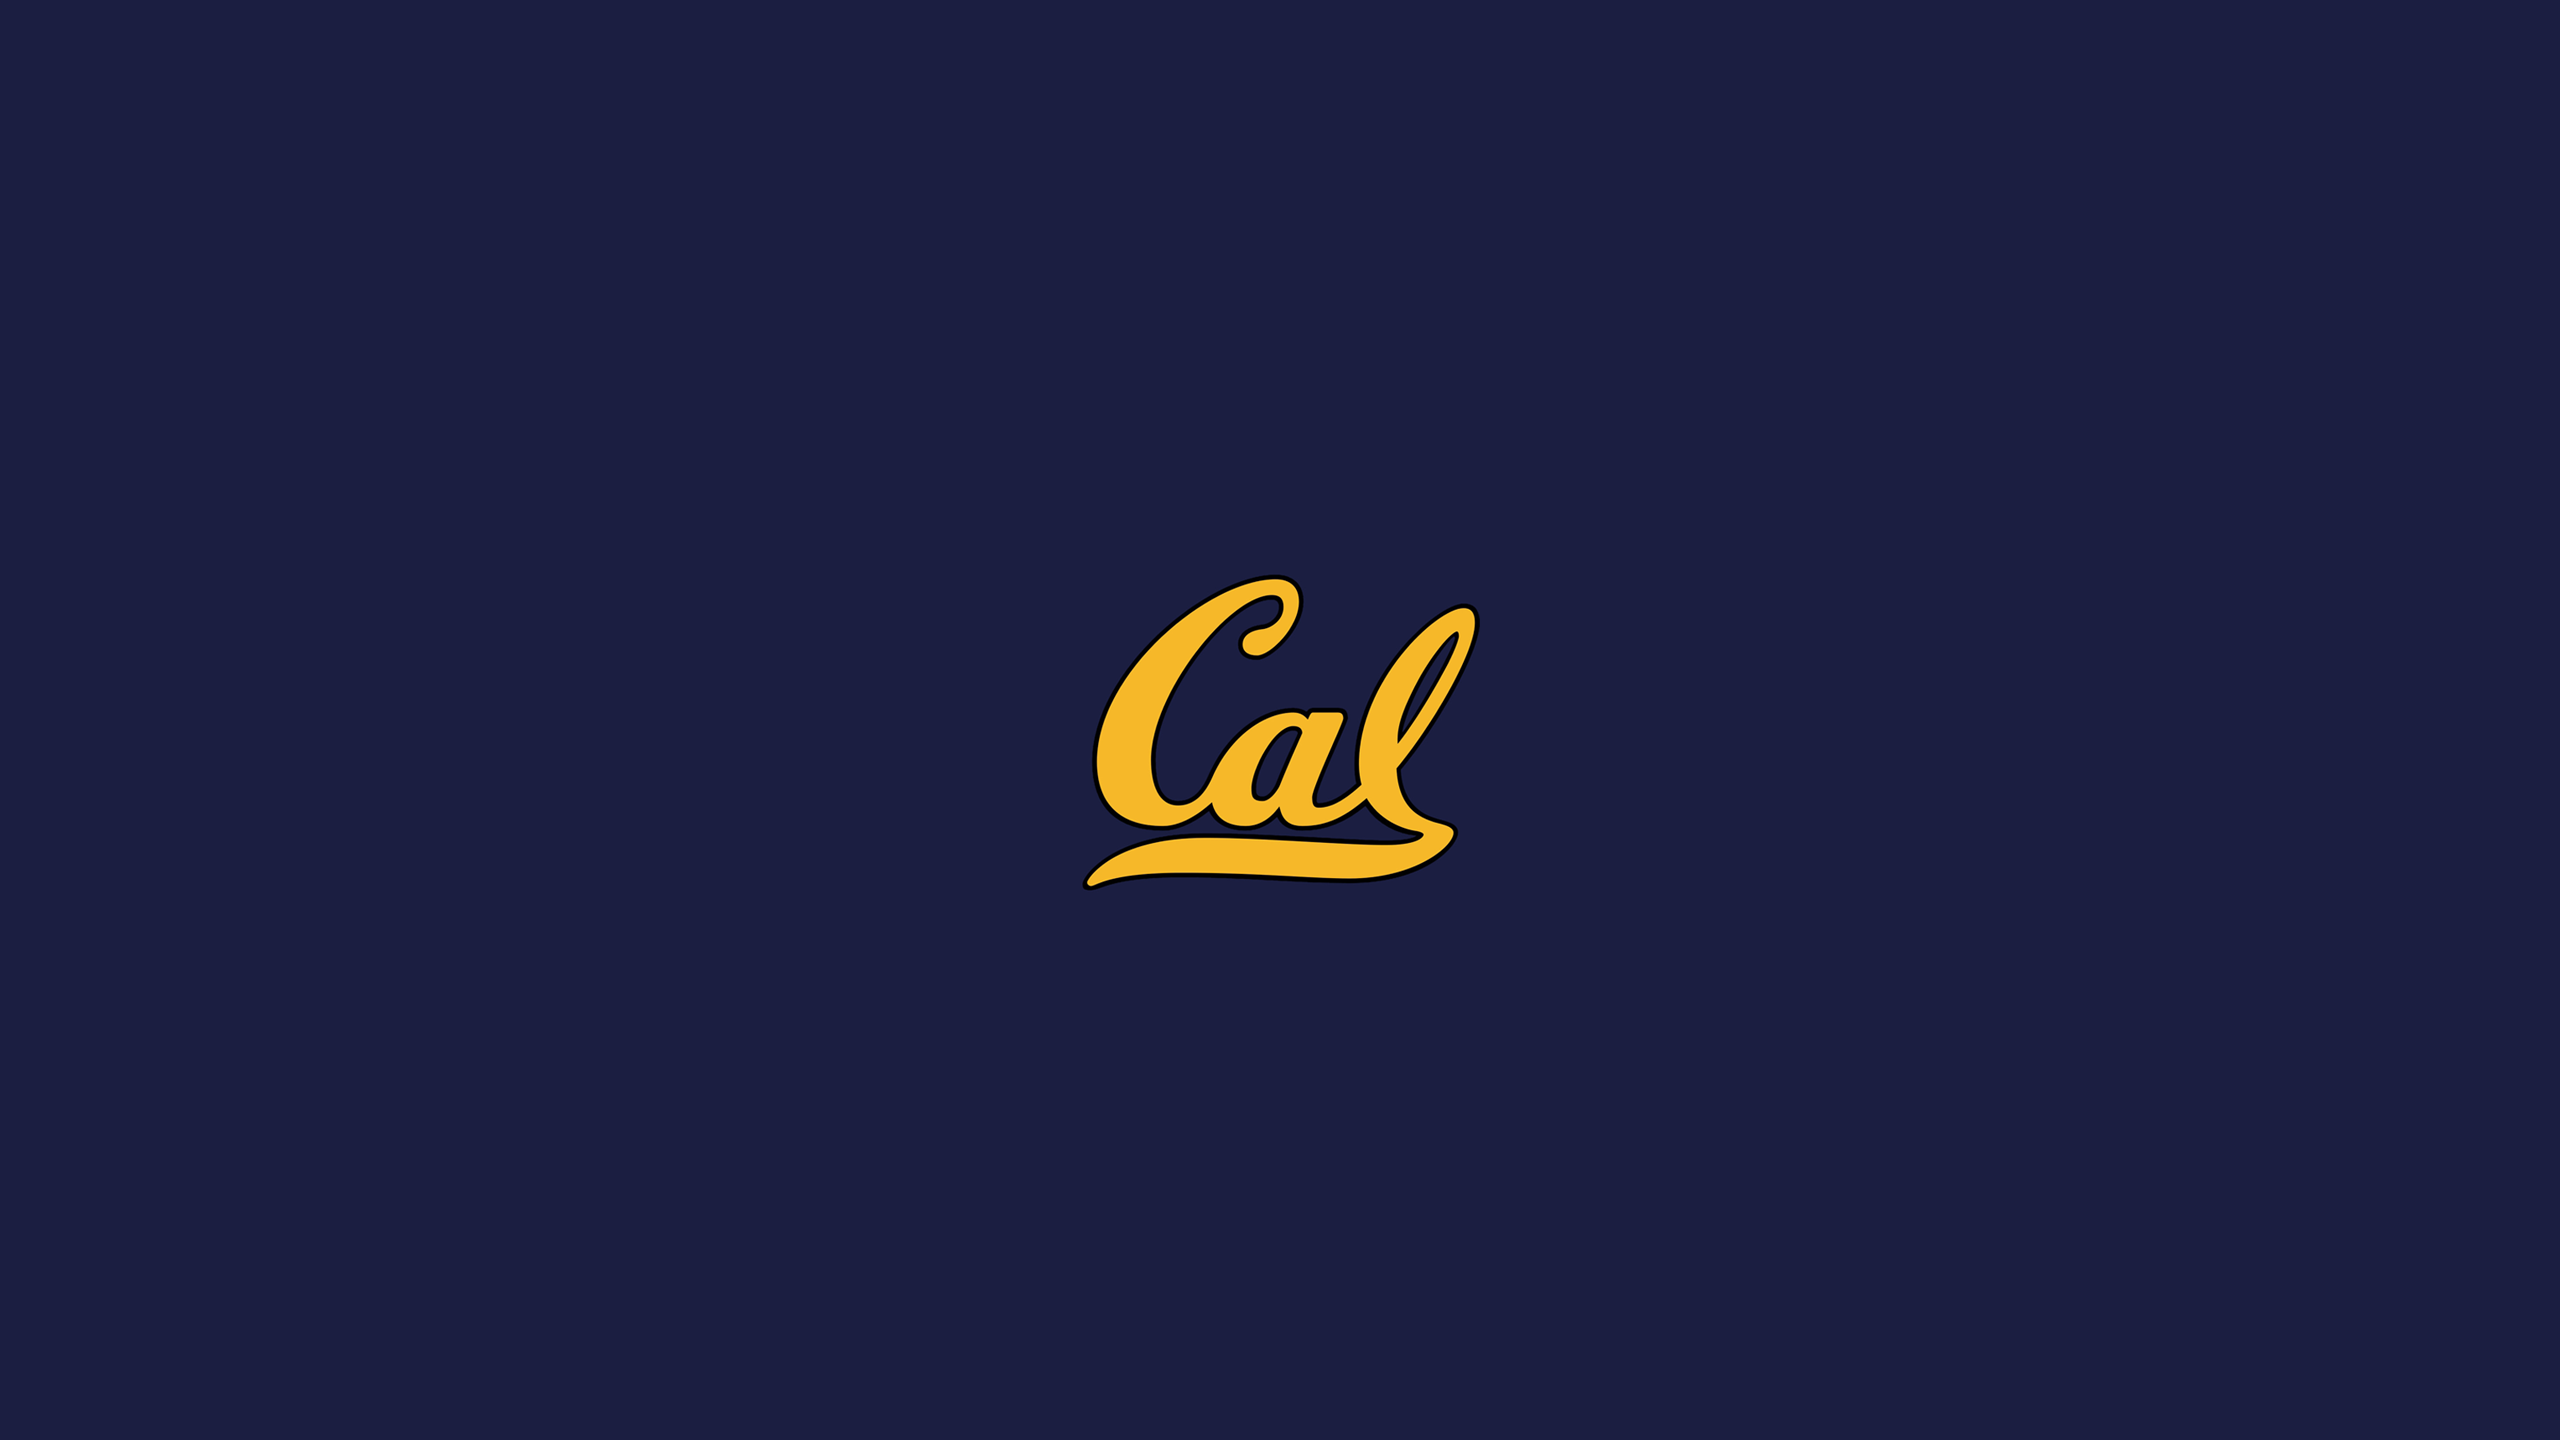 University of California - Berkeley Golden Bears